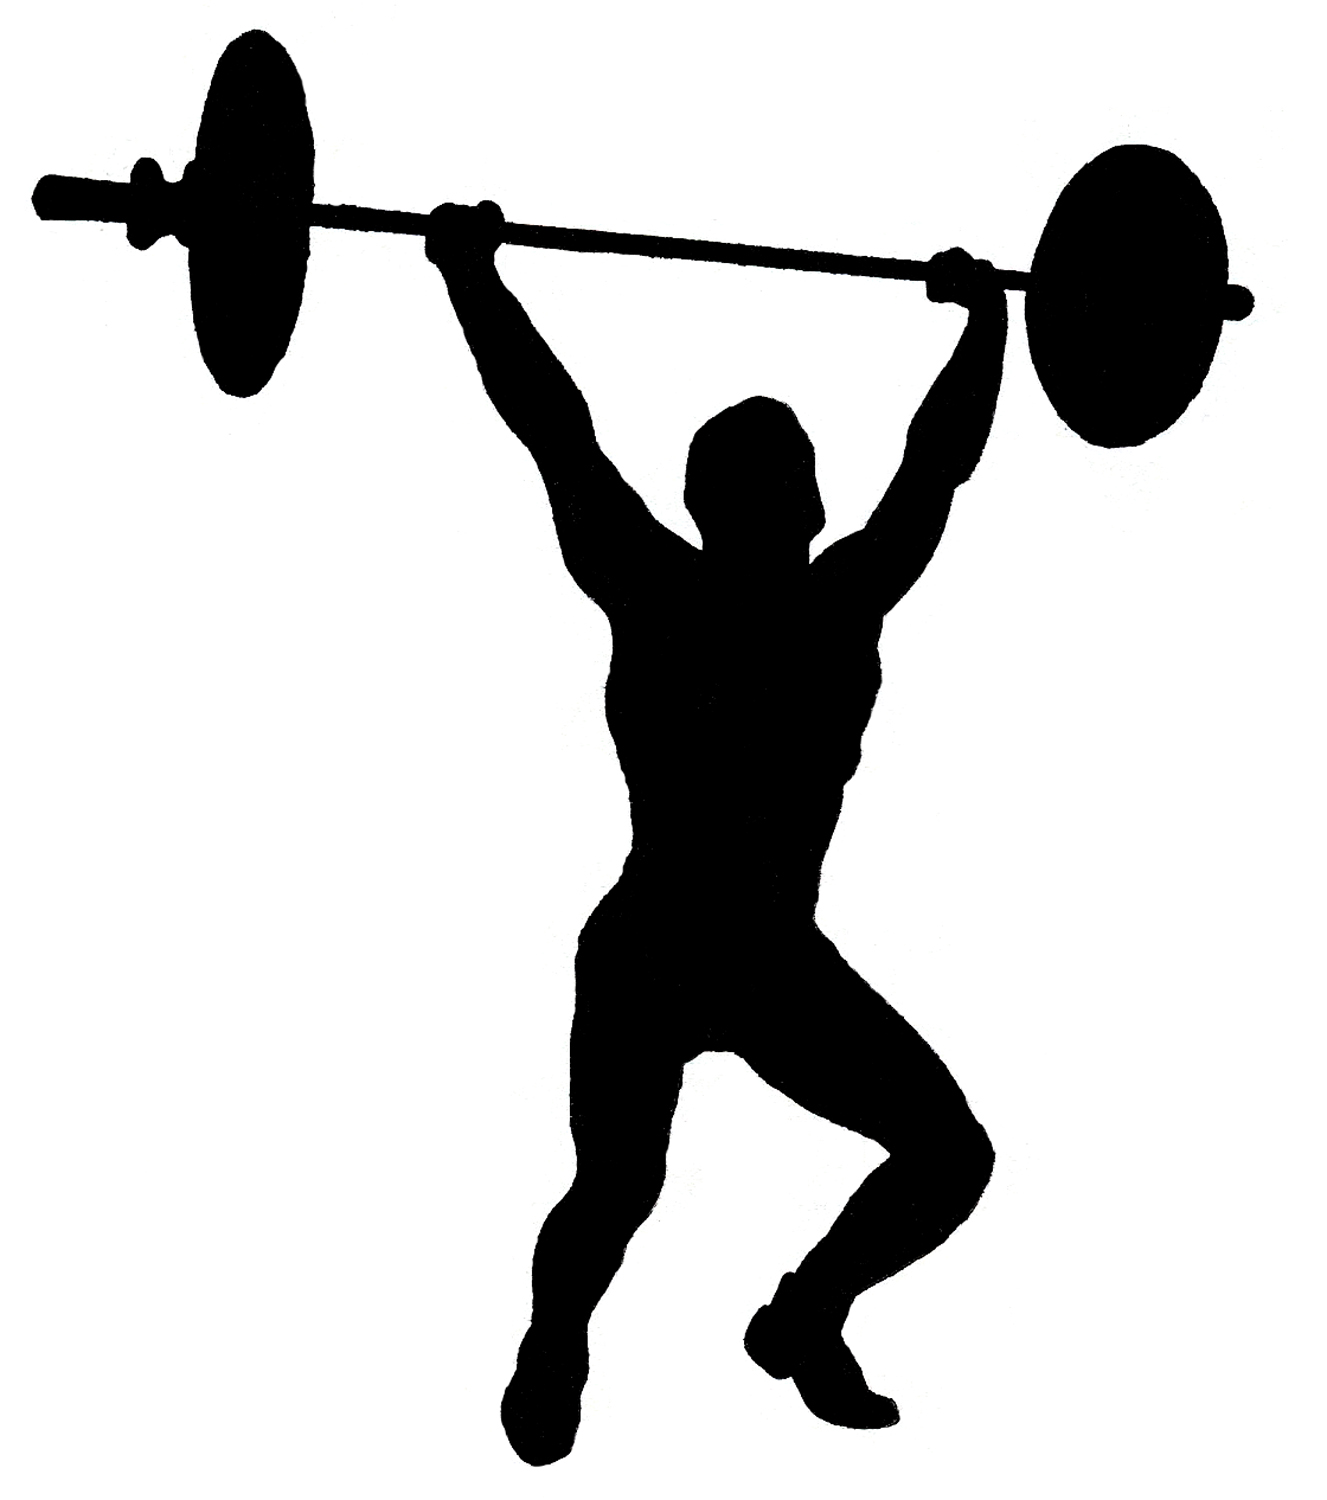 weight lifting silhouette clip art at getdrawings com free for rh getdrawings com